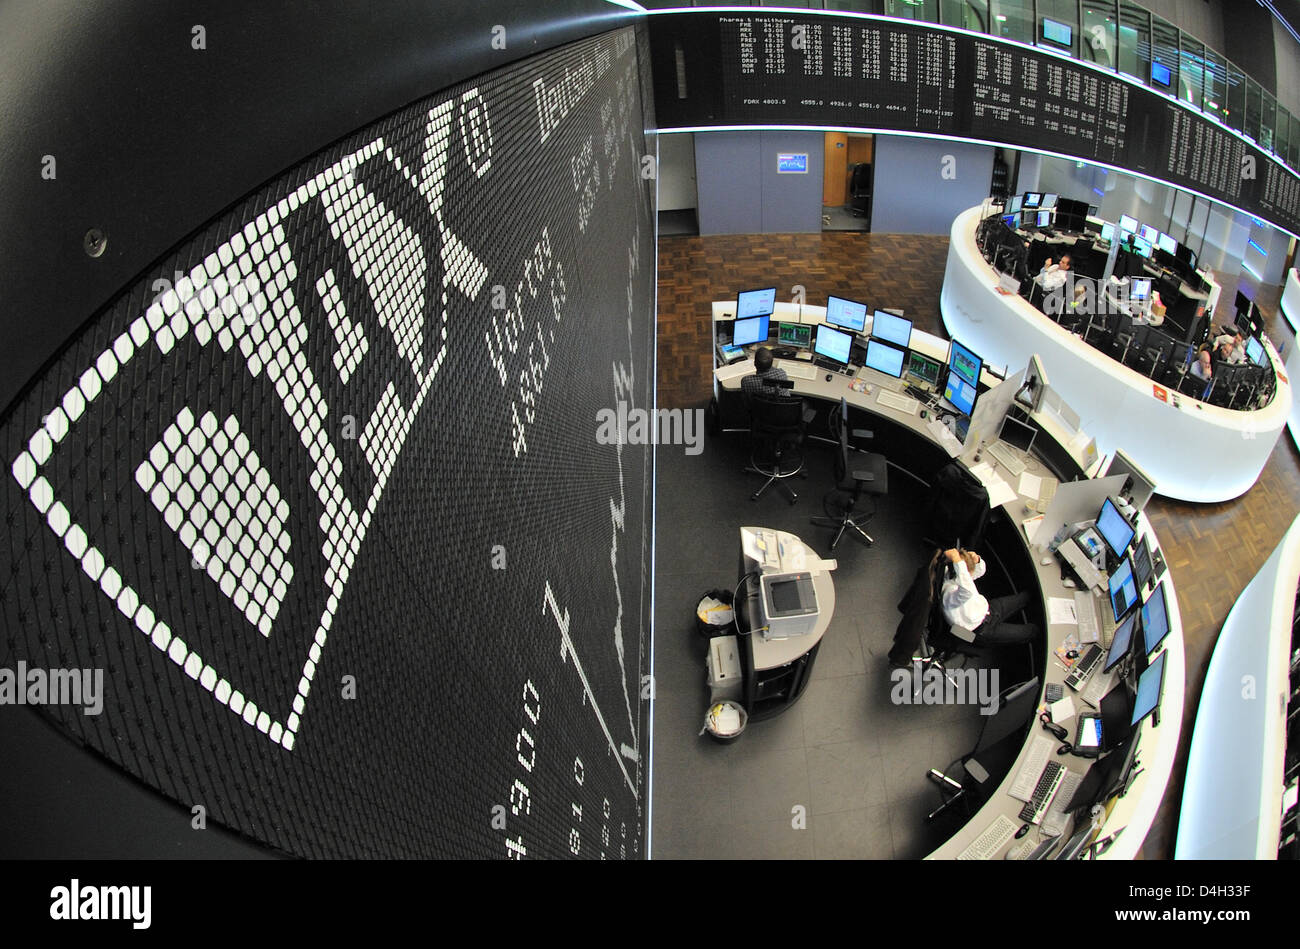 Dax share index : Jse top 40 share price